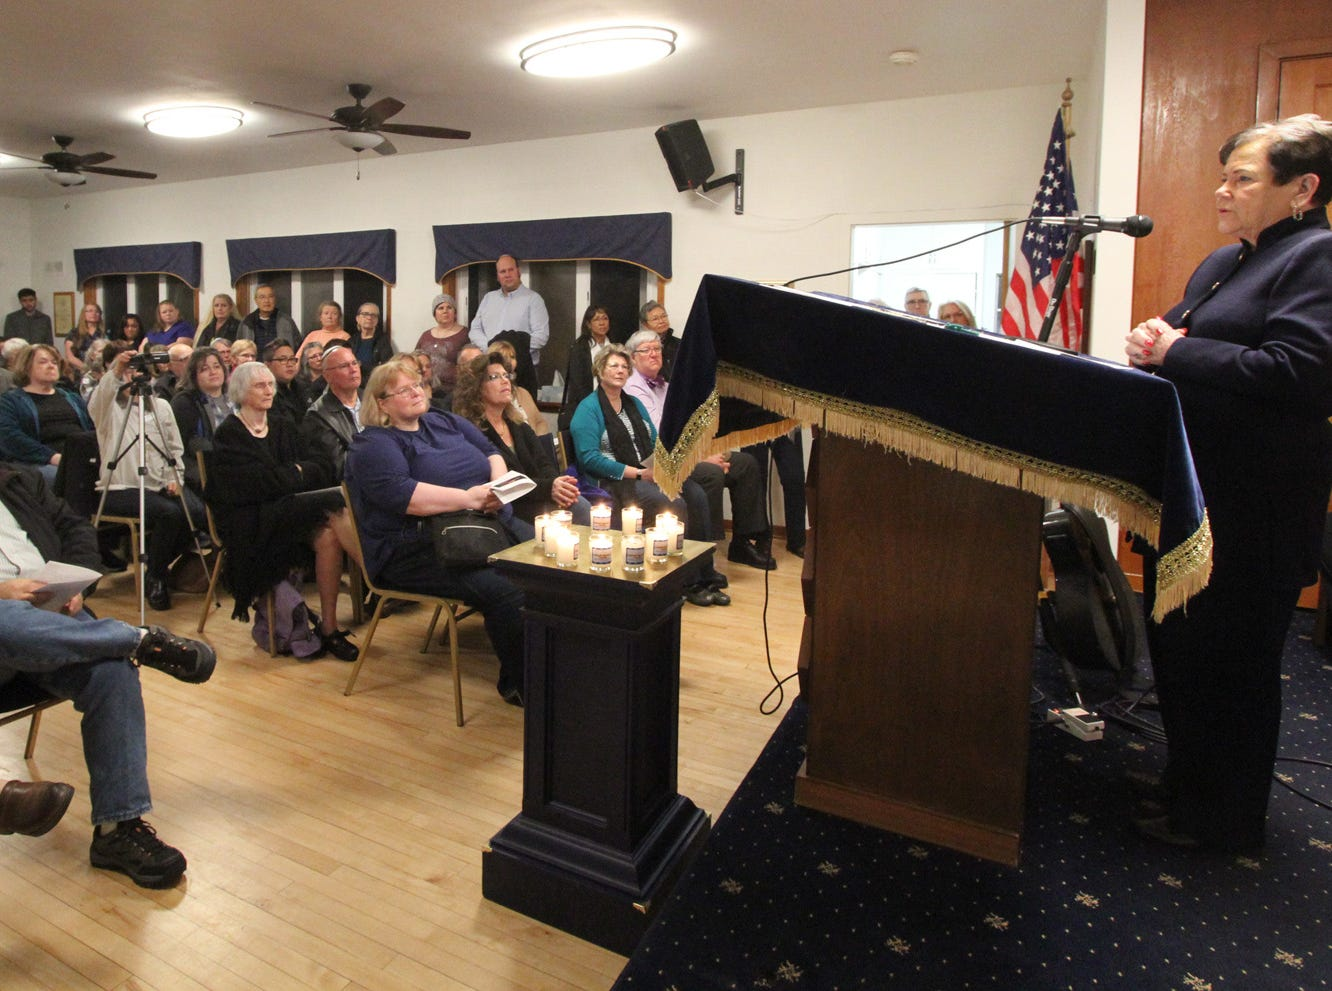 The Beth Hatikvah  Synagogue in Bremerton held a memorial service for the Tree of Life Synagogue shootings Tuesday night in Bremerton.